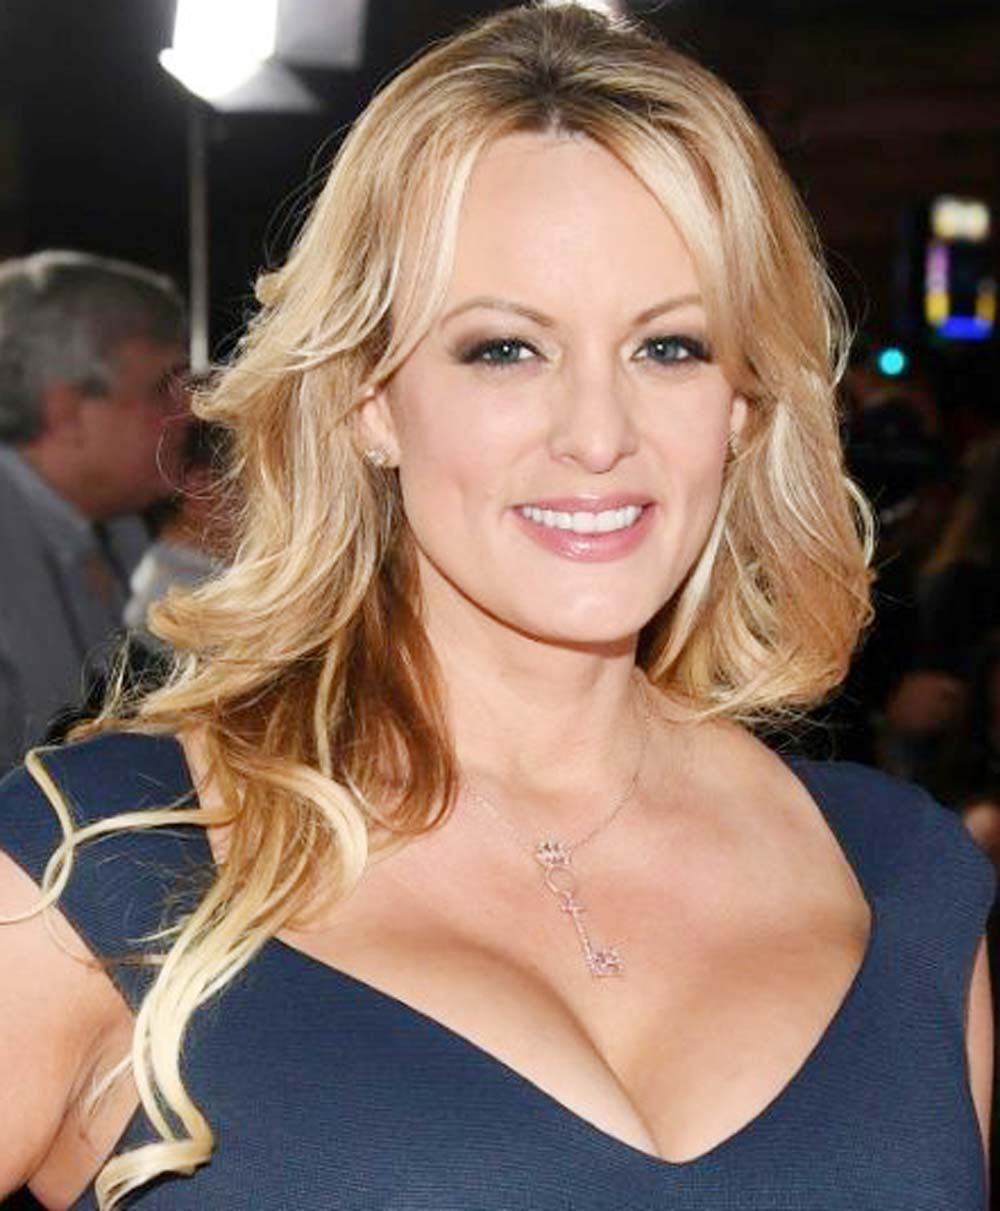 US vice police fired over Stormy Daniels strip-club arrest